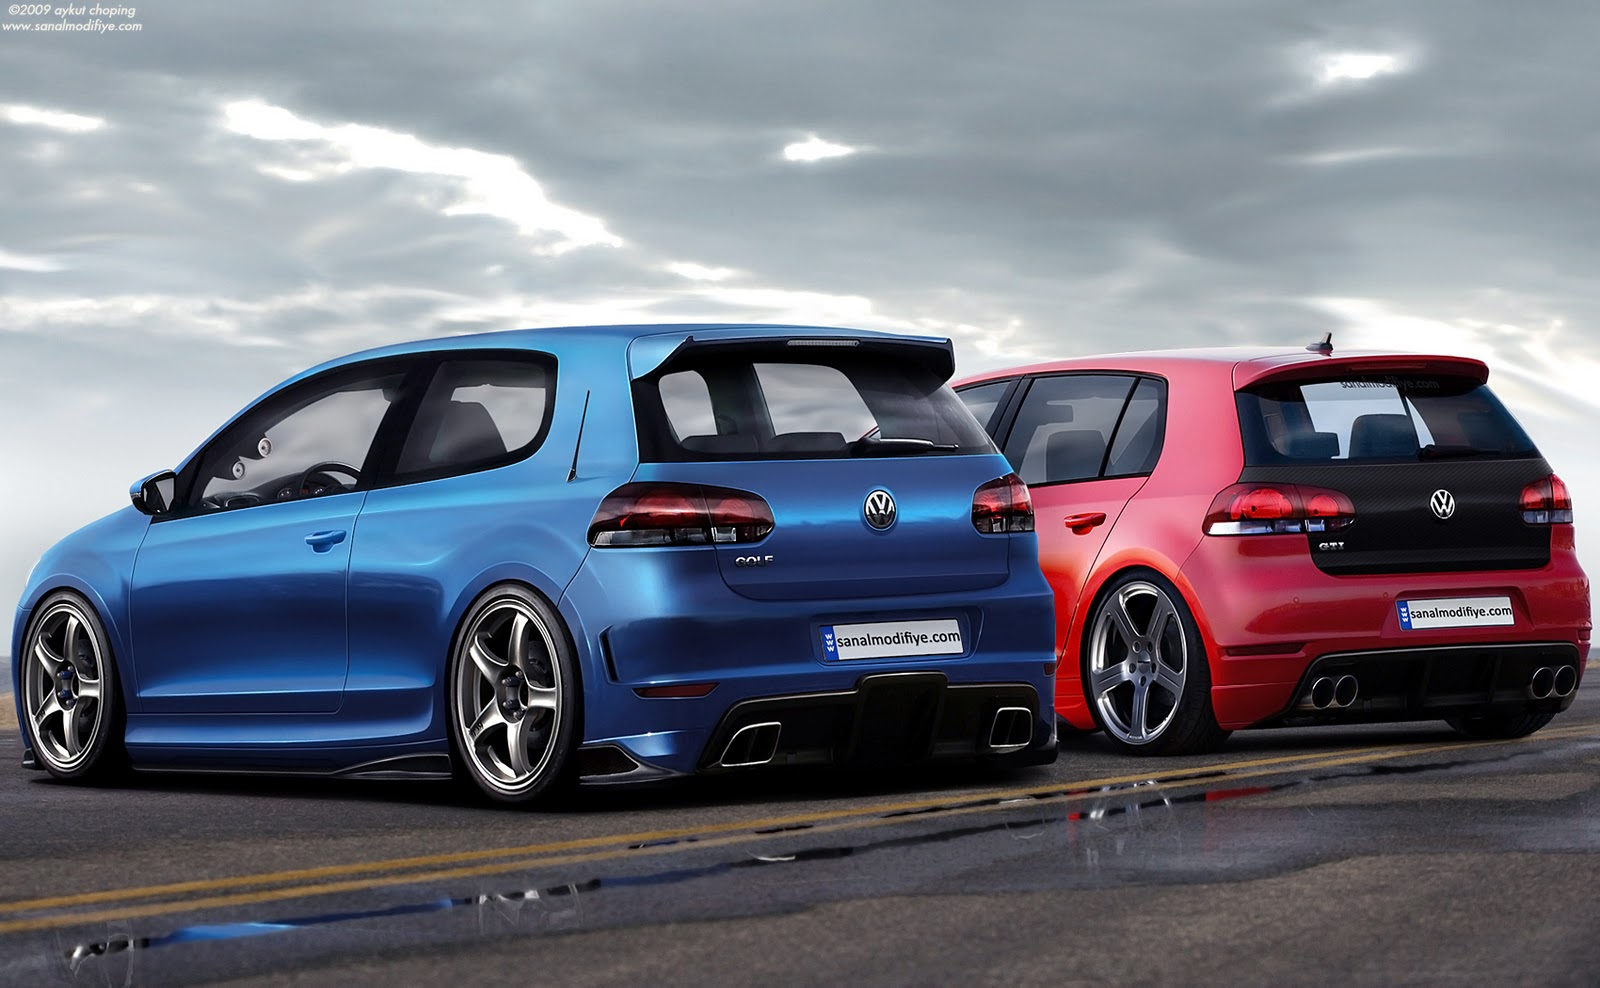 Download Vw Golf Wallpaper 1600x988 98 Golf 7